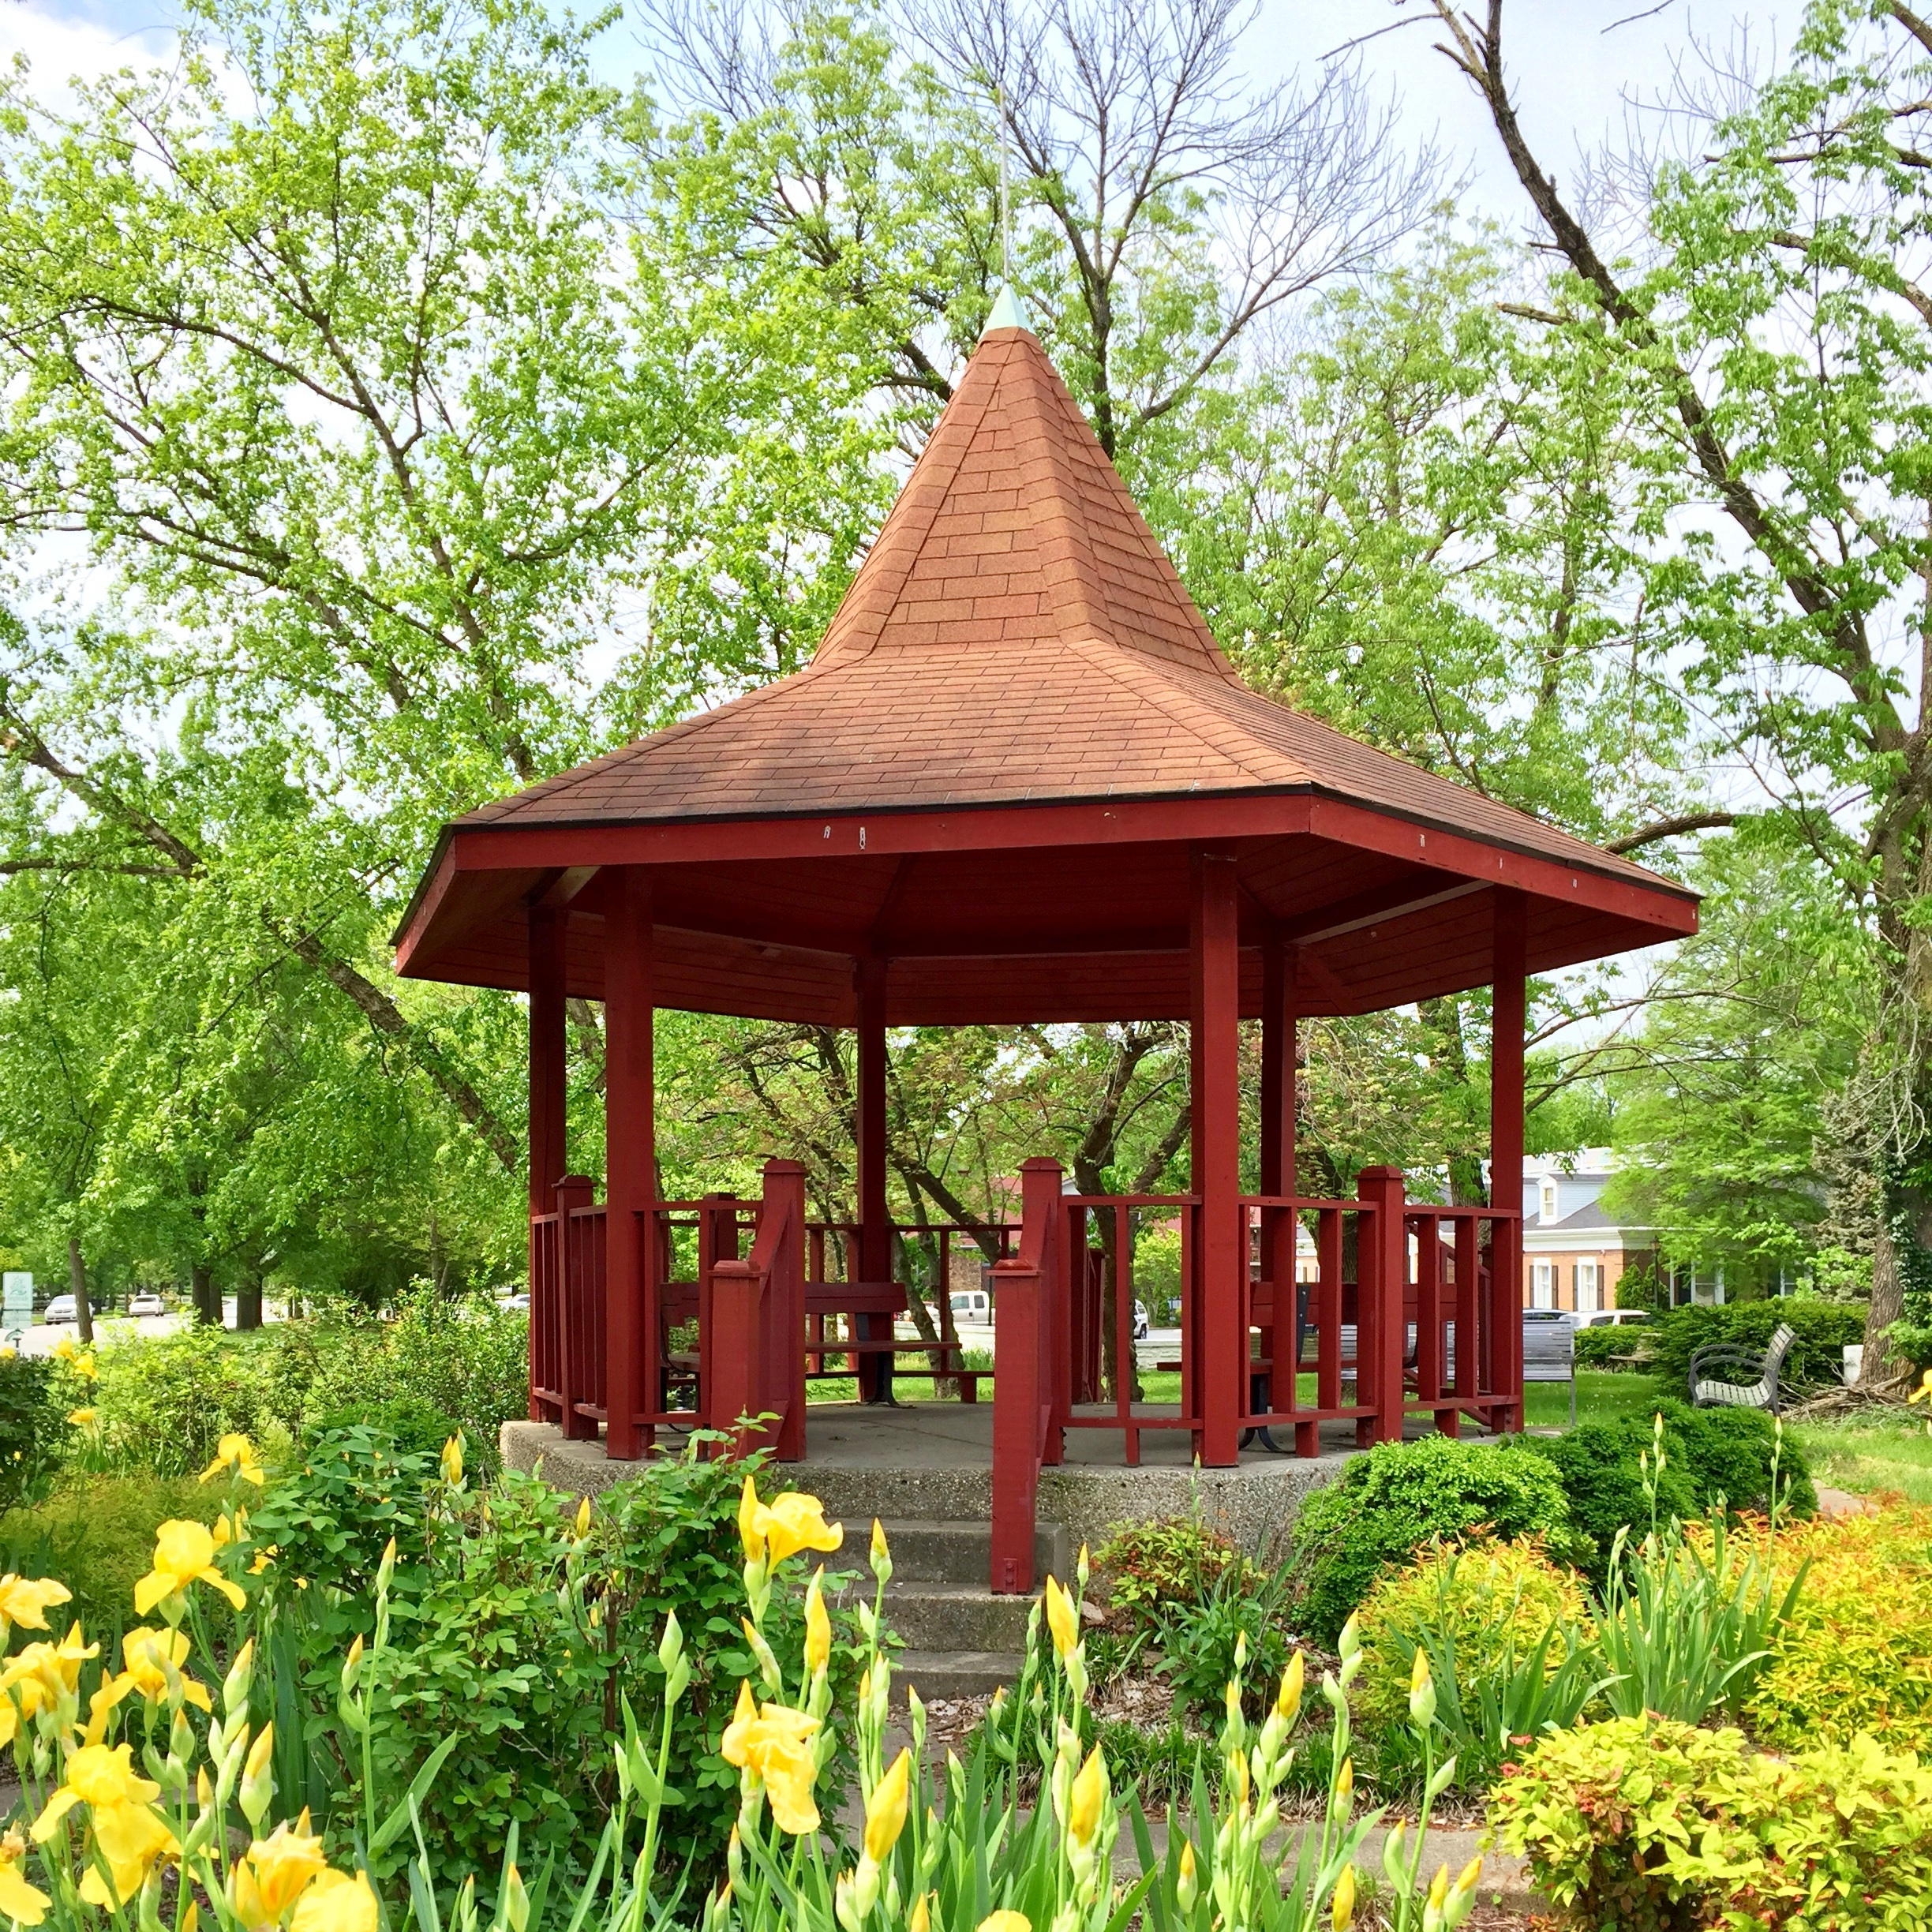 The gazebo at Woodlawn Avenue and Southern Parkway